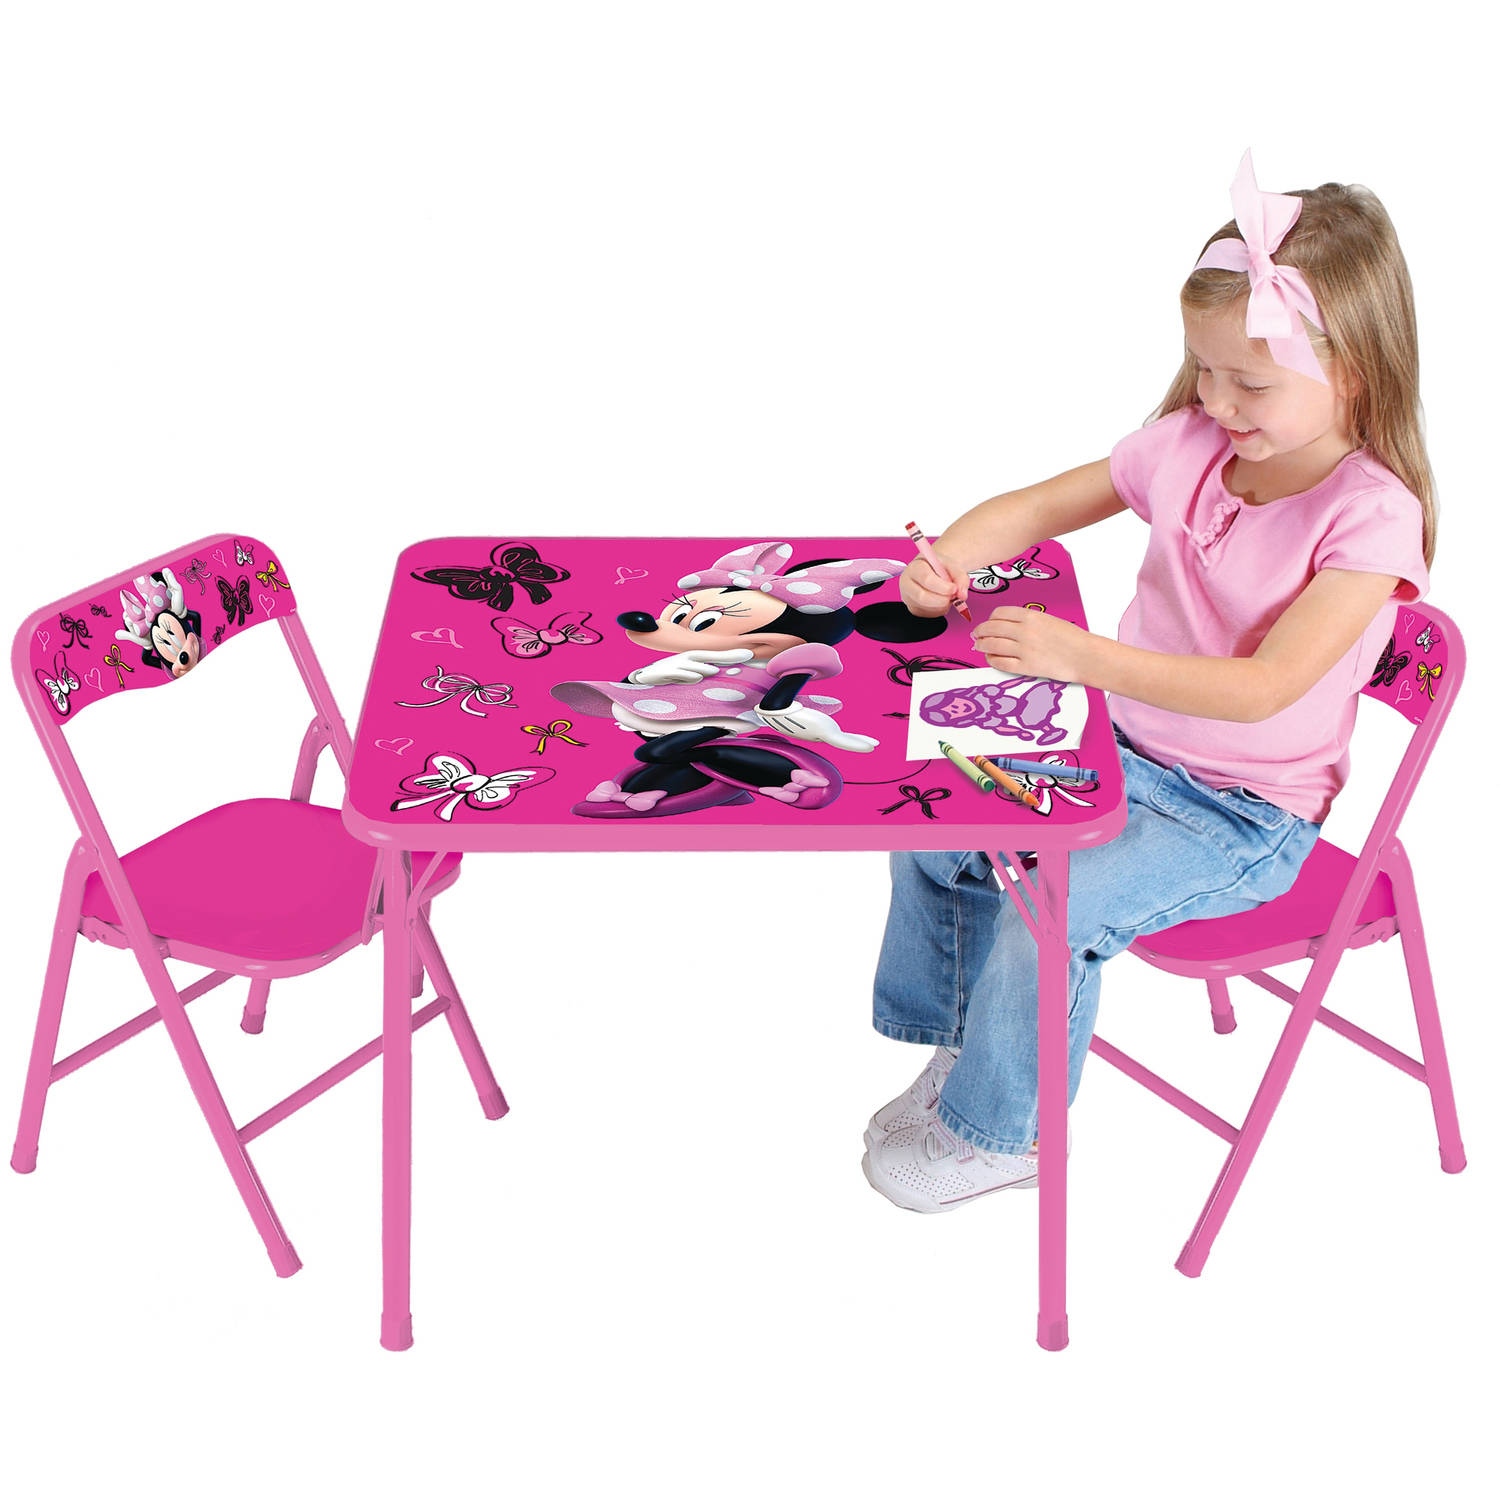 sc 1 st  Walmart : child table set - Pezcame.Com